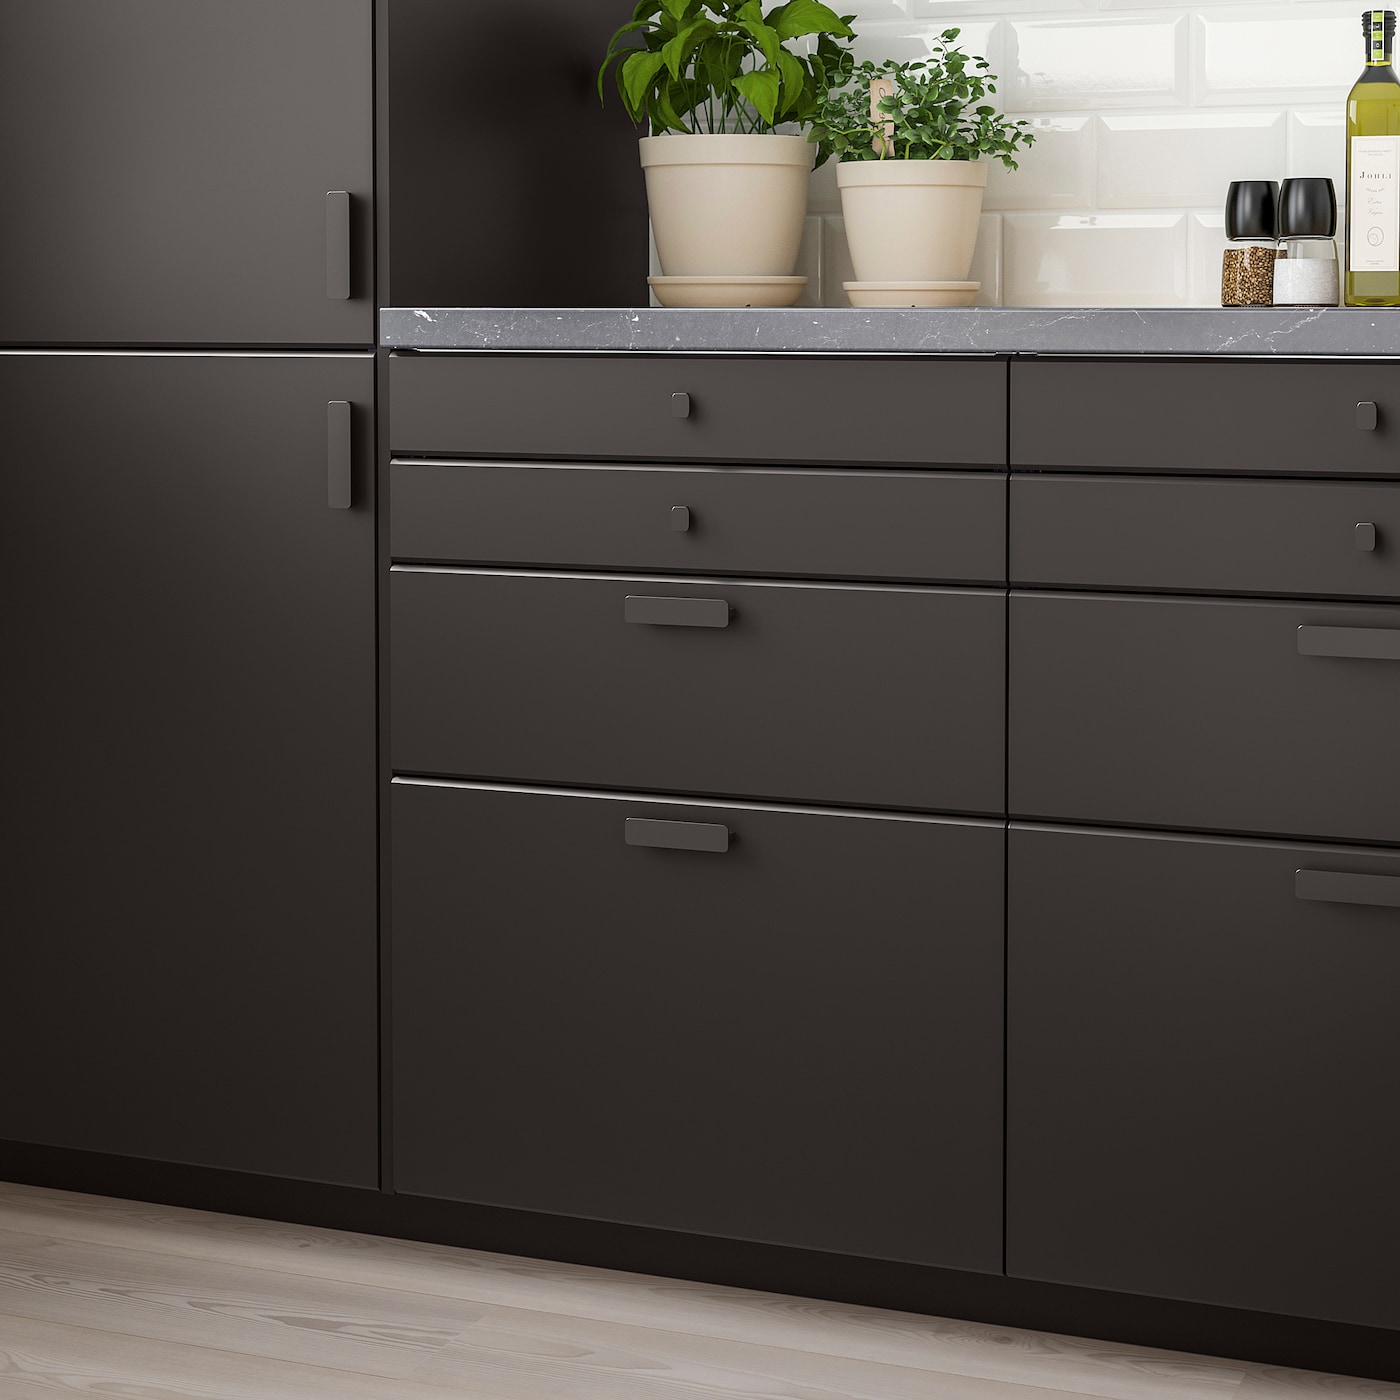 KUNGSBACKA Drawer front, anthracite, 60x40 cm